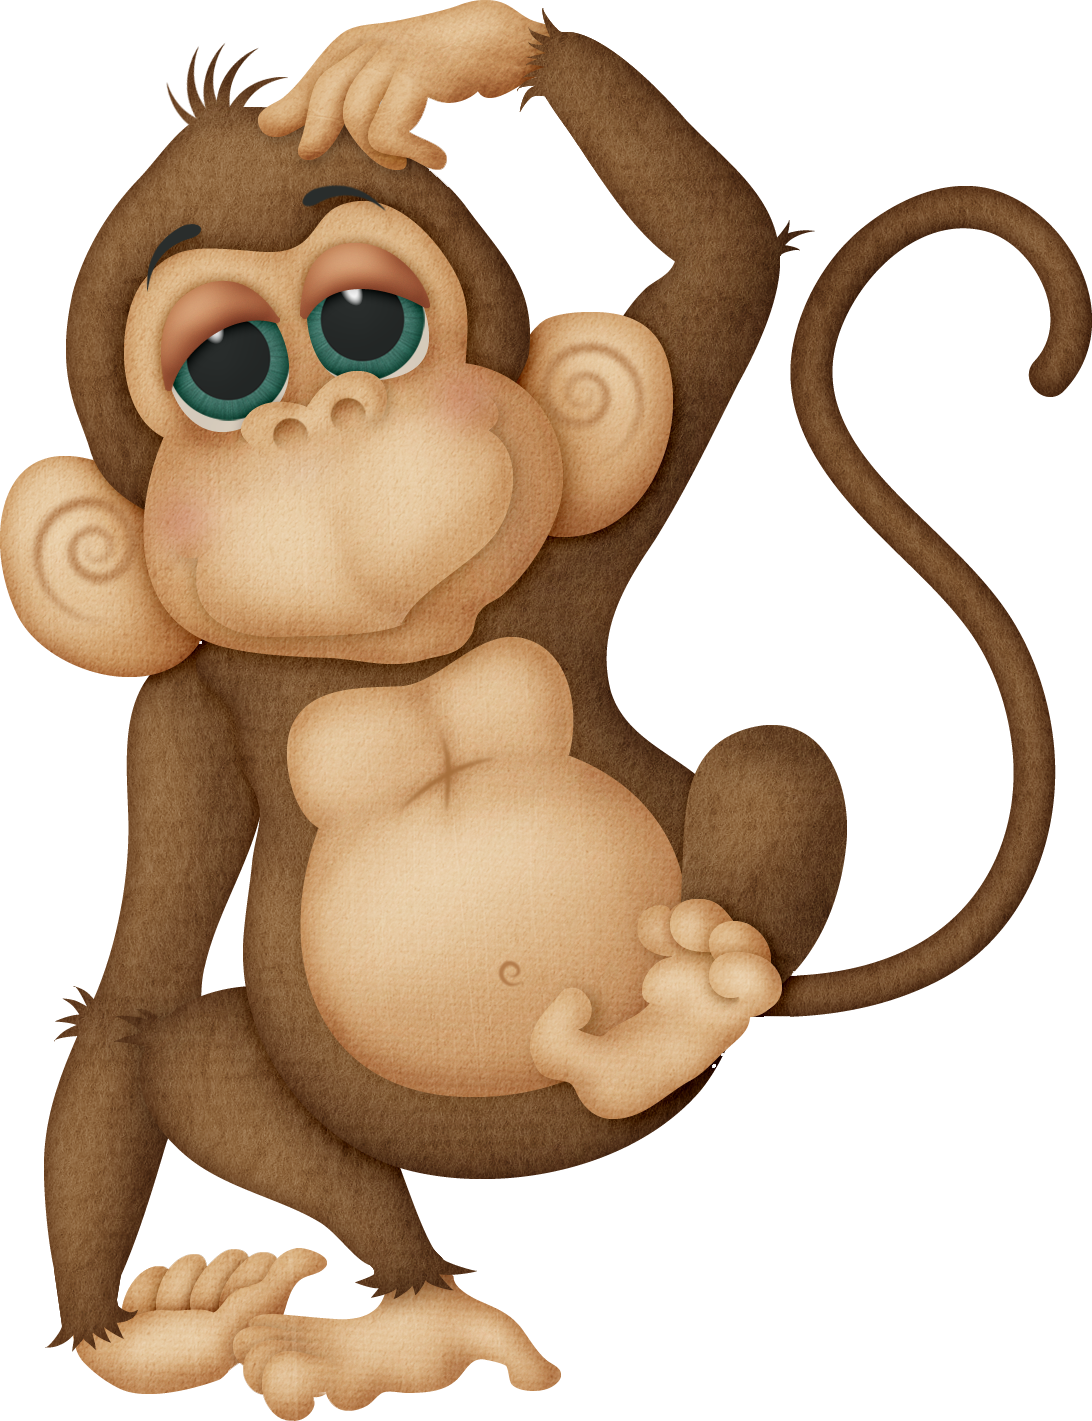 Monkey reading a book clipart clip free download mim_wt_monkey.png (1092×1421) | Political Artist Catalexisjazz ... clip free download